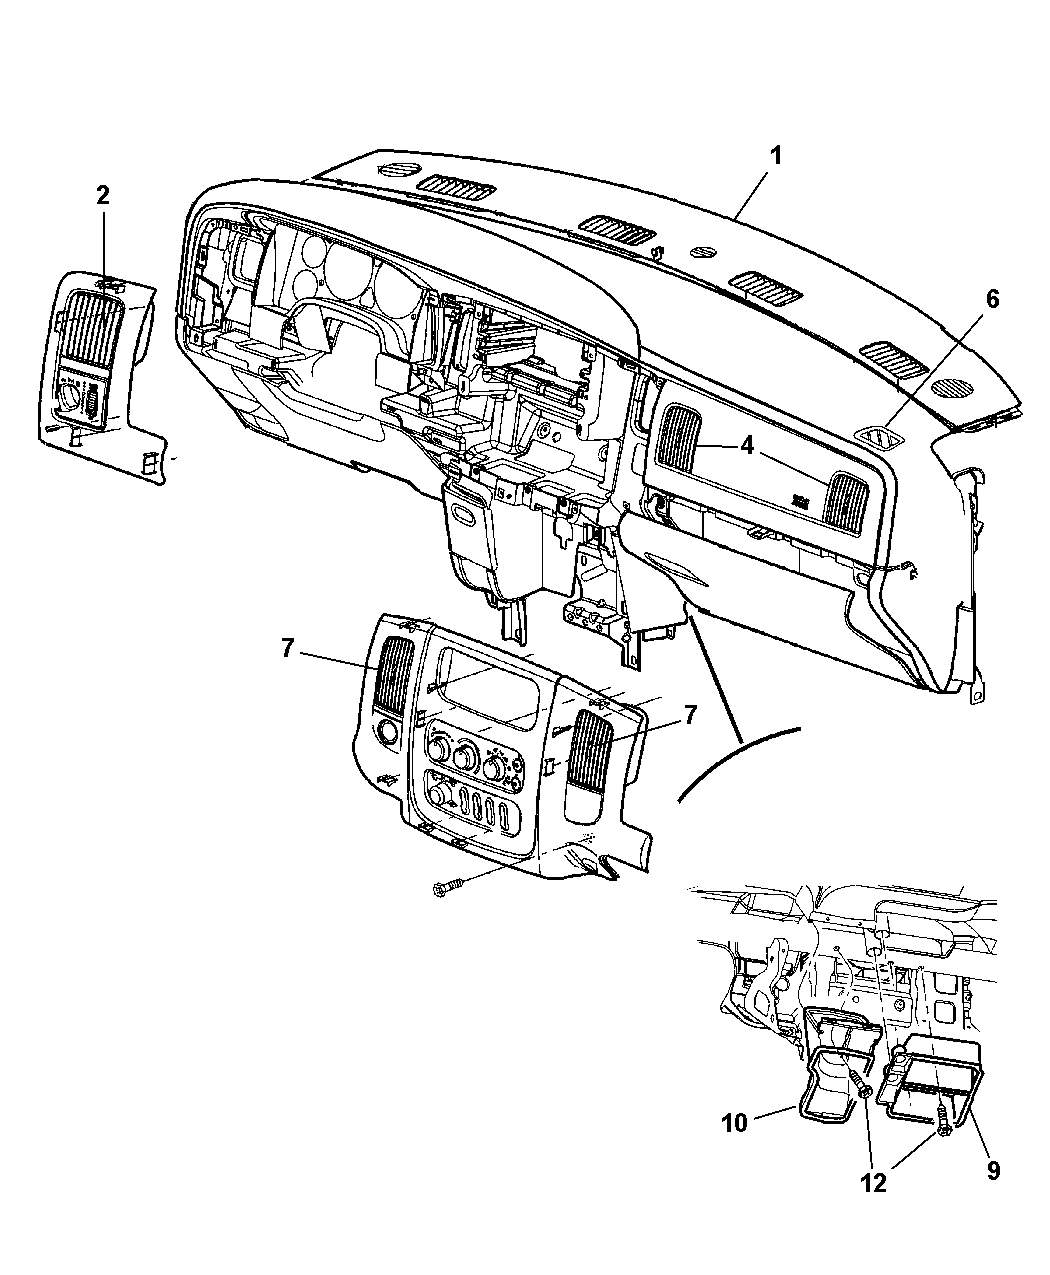 2002 Dodge Ram 1500 Wiring Diagram